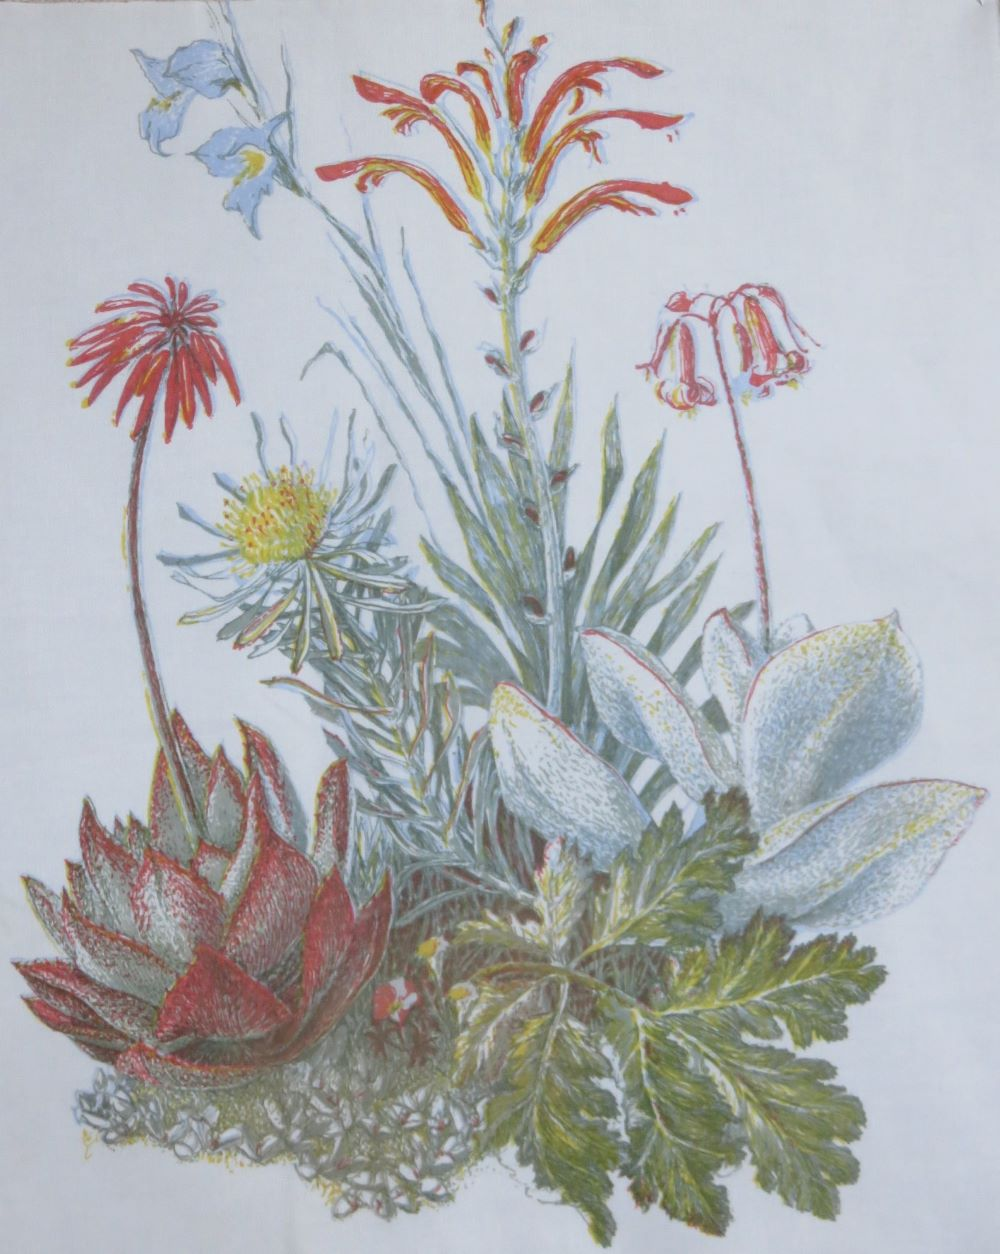 A selection of vegetation that grows on granite in the Renosterveld. A five color print.